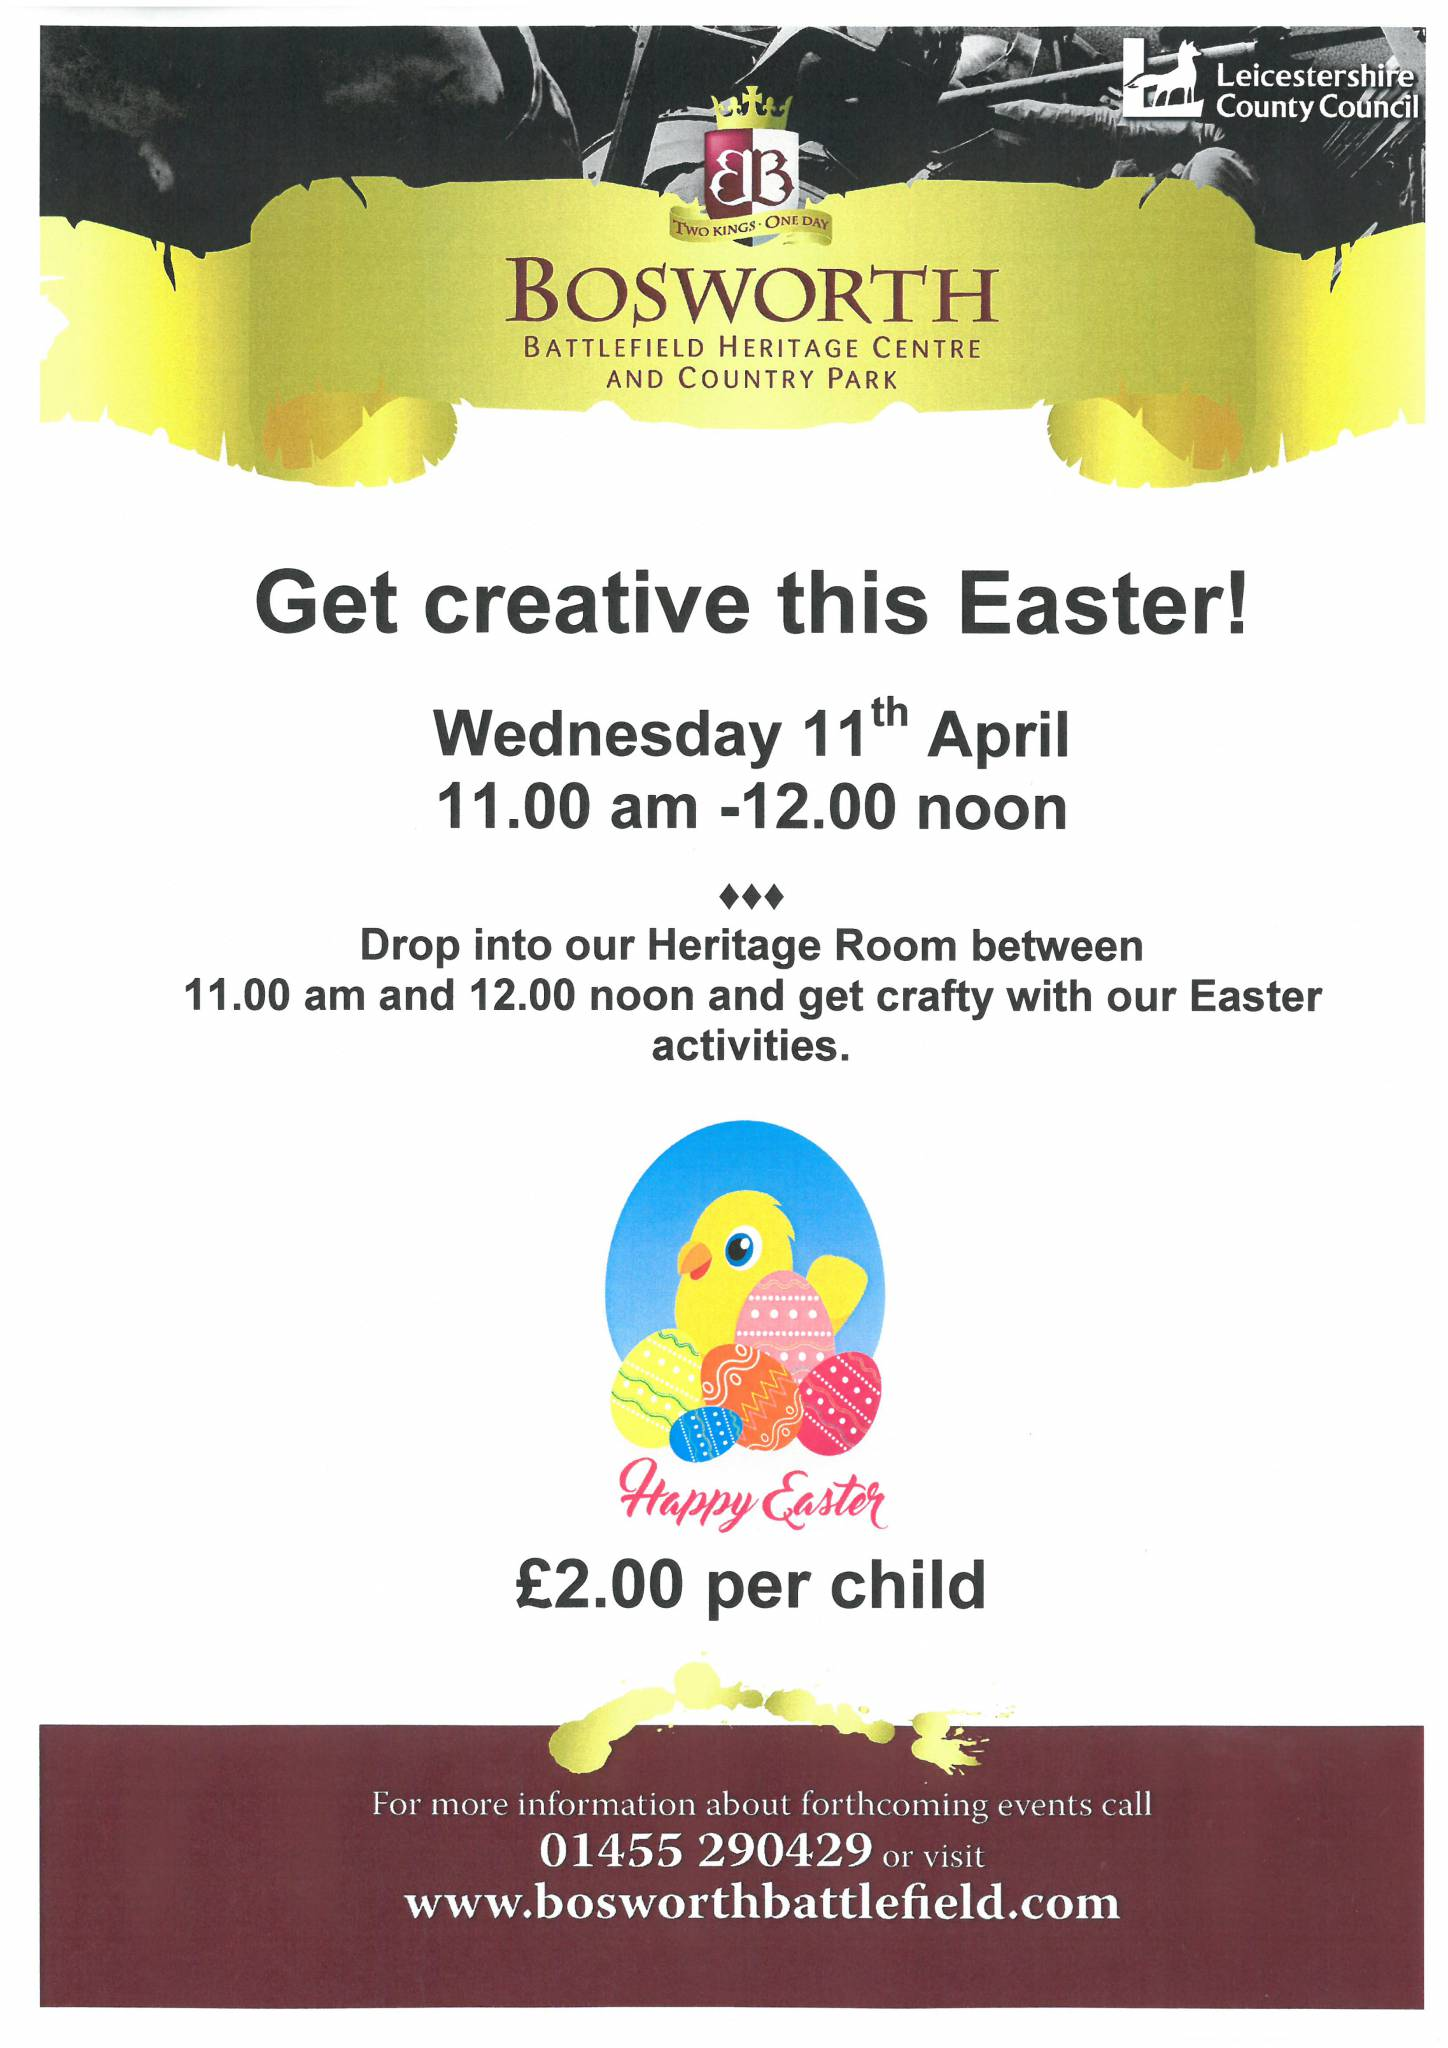 Get creative this Easter